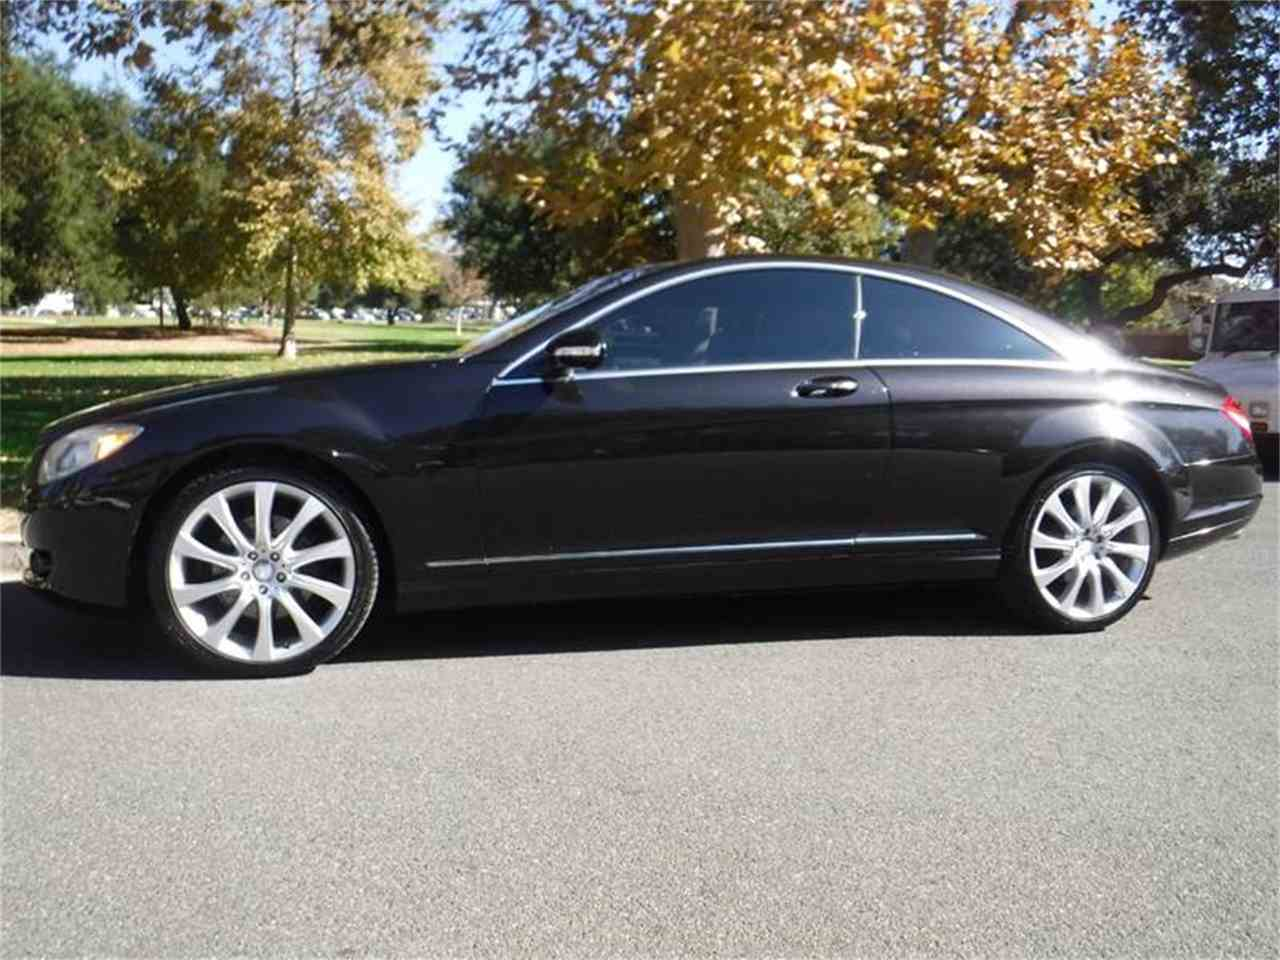 Large Picture of 2007 Mercedes-Benz CL-Class located in Thousand Oaks California - $15,995.00 Offered by Allen Motors, Inc. - MAMQ